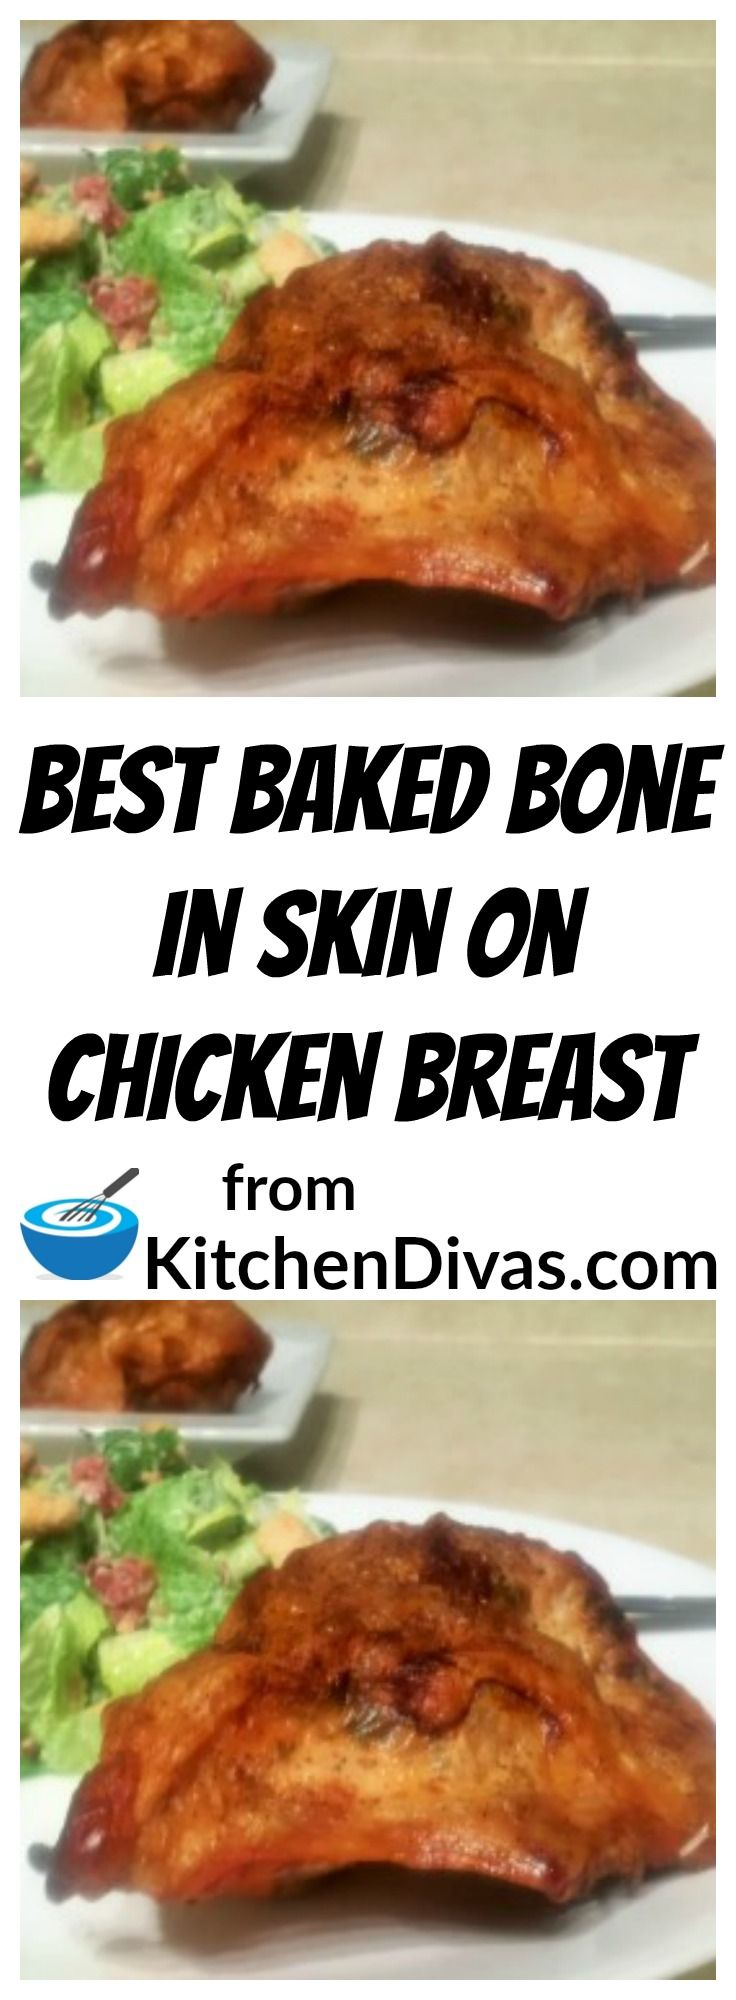 These are the Best Baked Bone In Skin On Chicken Breasts I have ever made. For me crispy skin is the key to an awesome baked chicken breast. This recipe is simple, quick and totally delicious. Whether you use tarragon, sage or just garlic, you will make these chicken breasts over and over again.